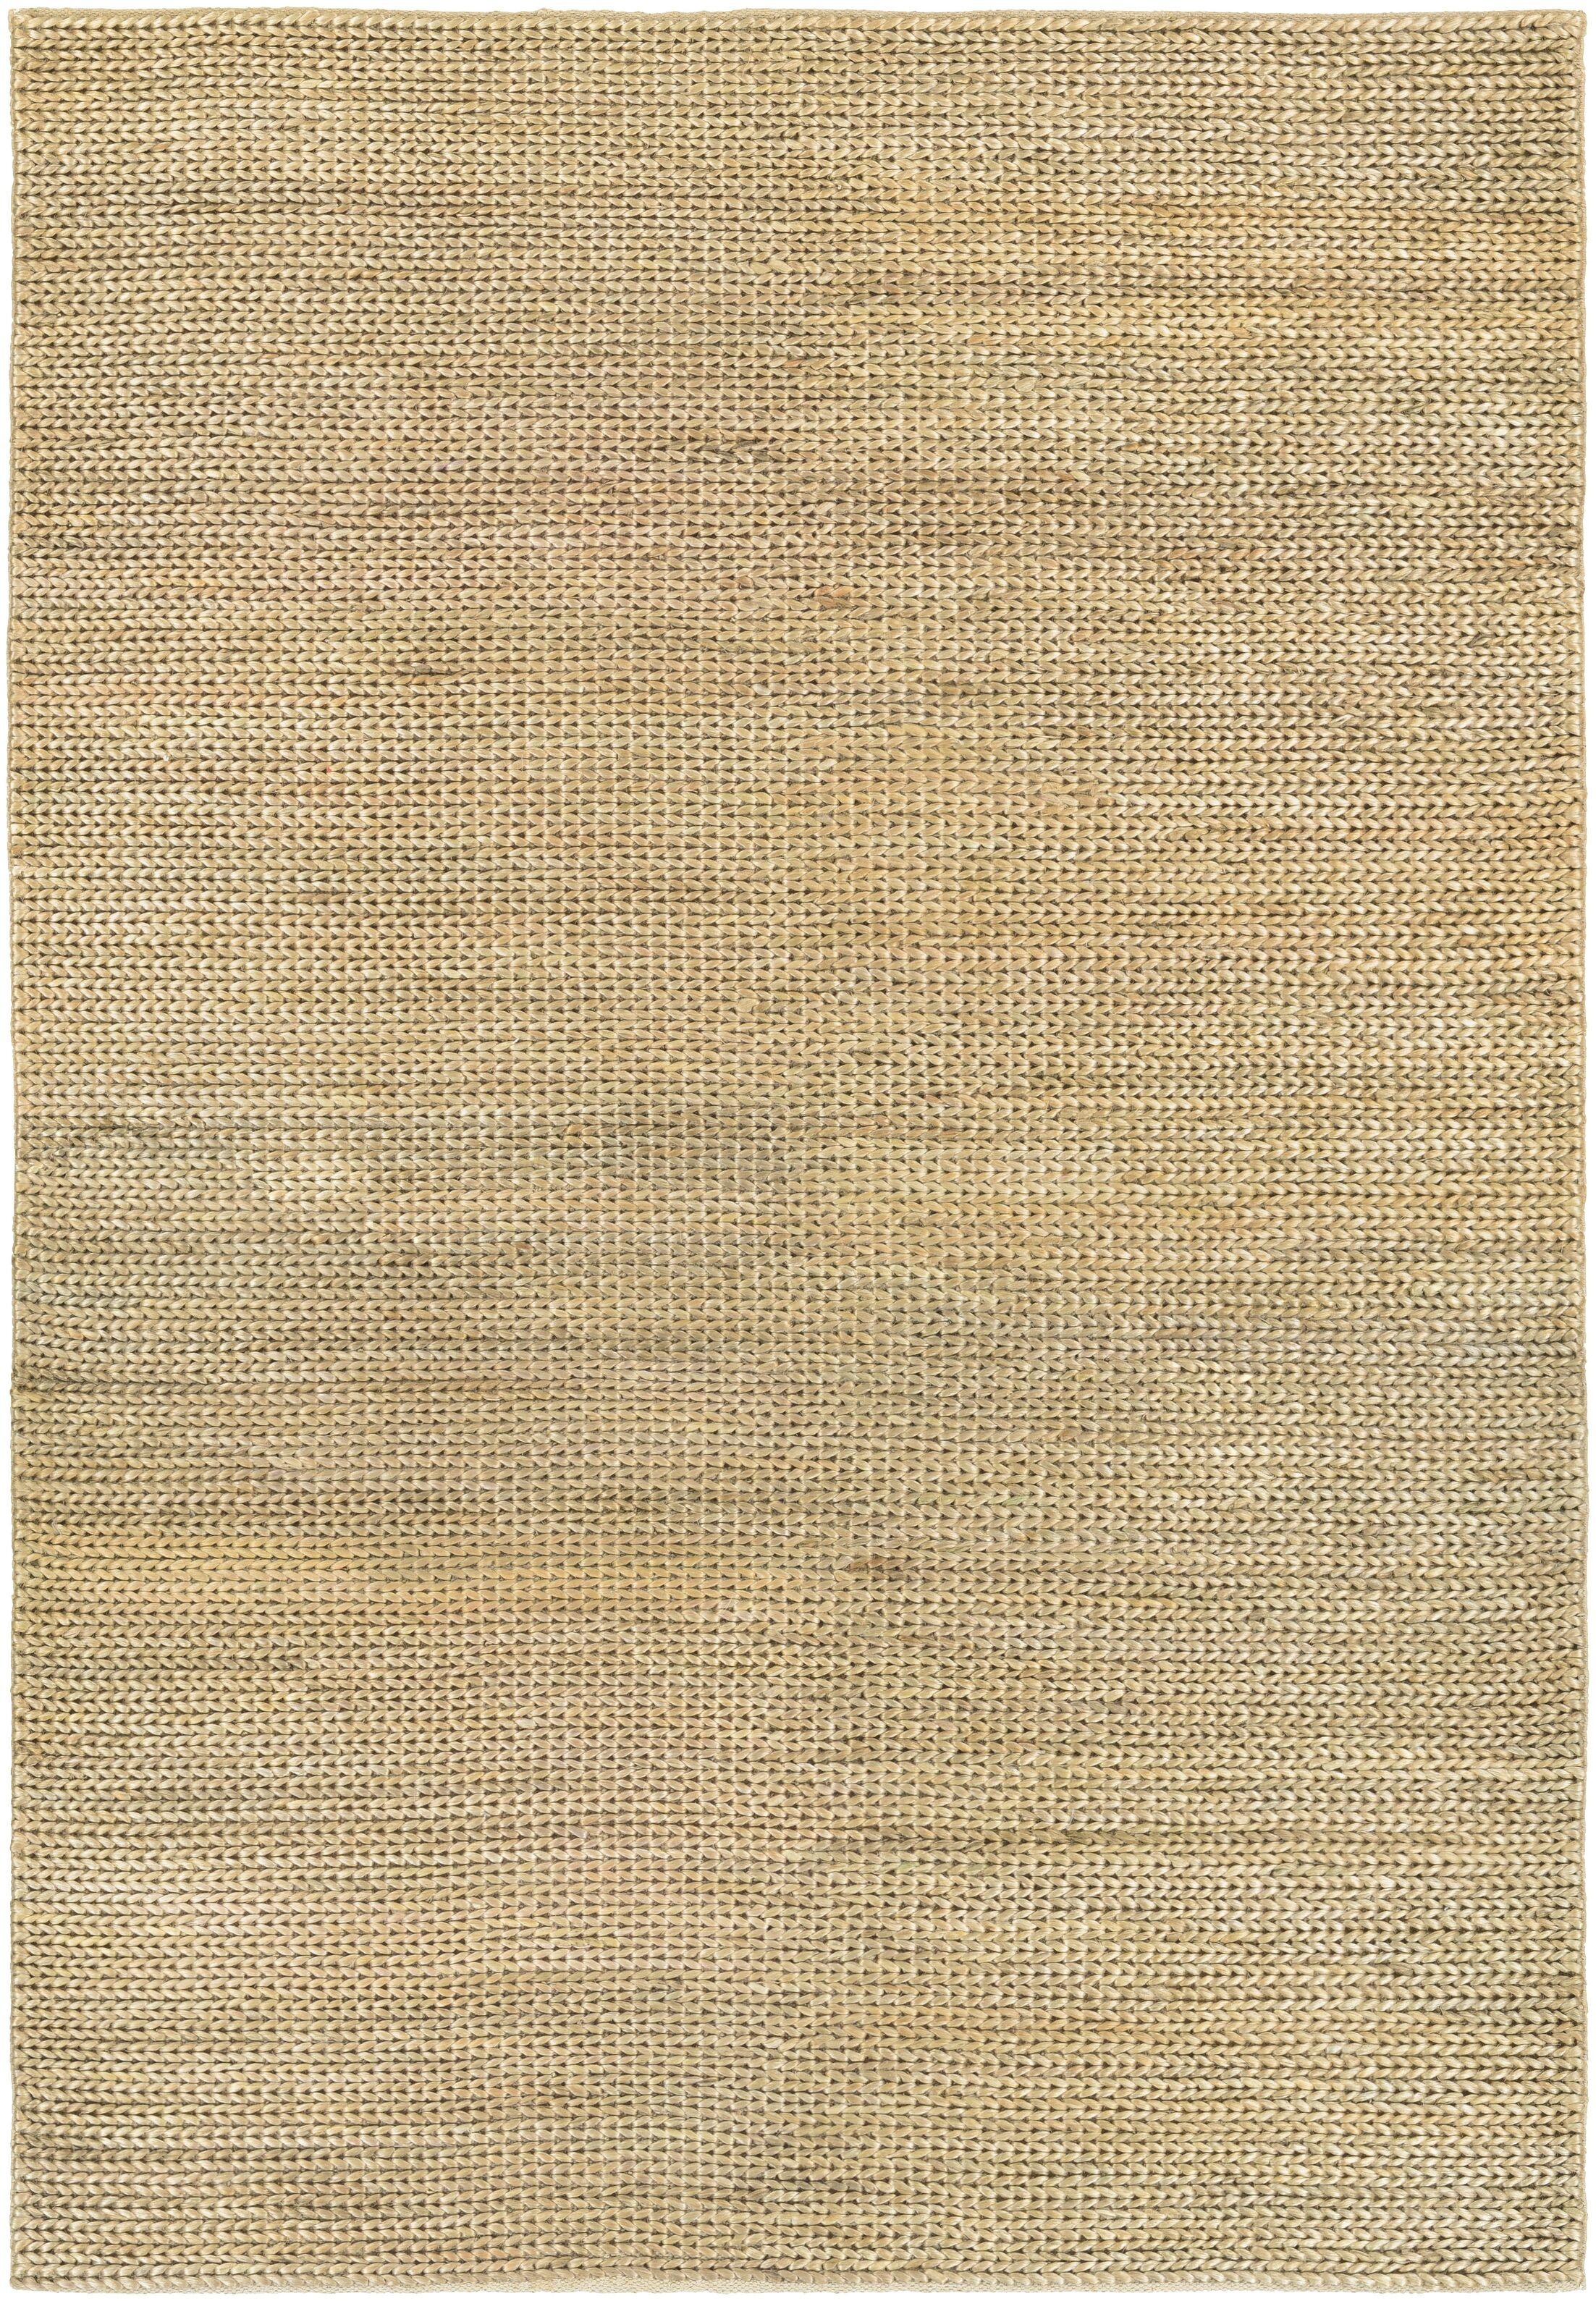 Uhlig Hand Woven Cotton Cream/Natural Area Rug Rug Size: Rectangle 7'10